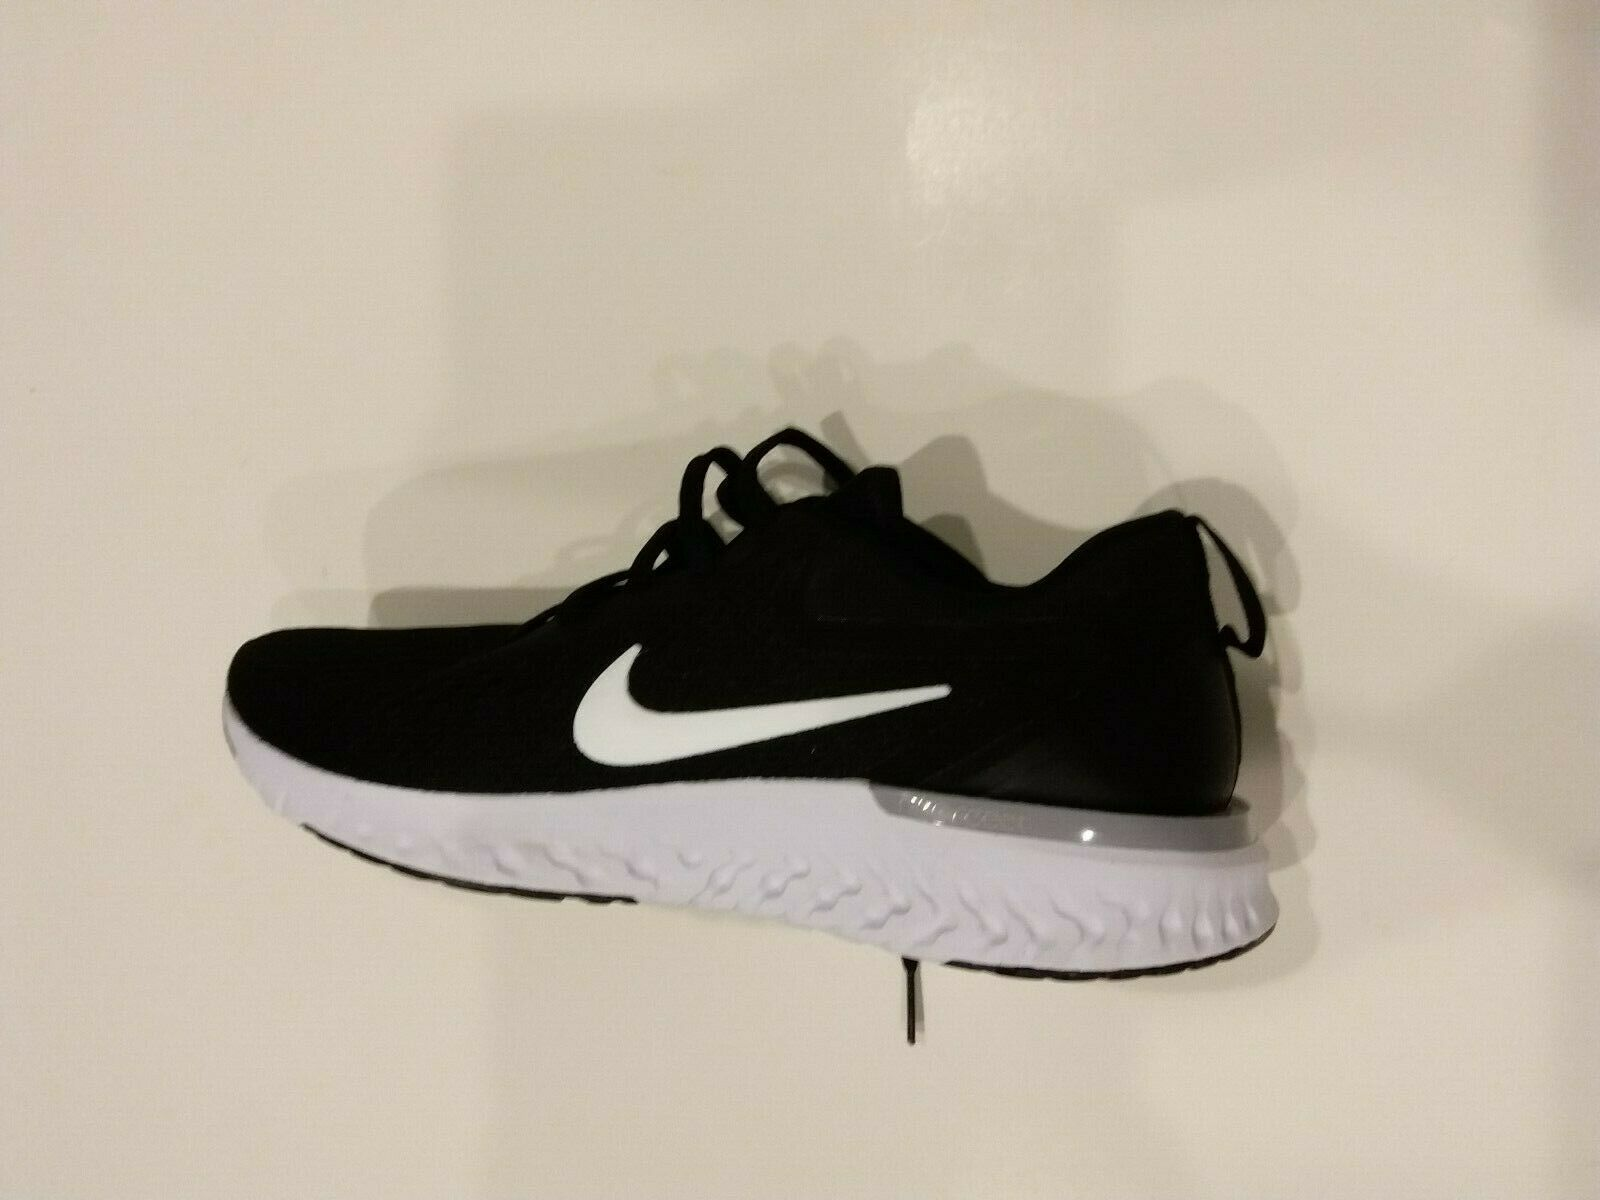 Primary image for Nike Women's Odyssey React Running Shoes Size: 10.5 AO9820 001 Black/White-Wolf